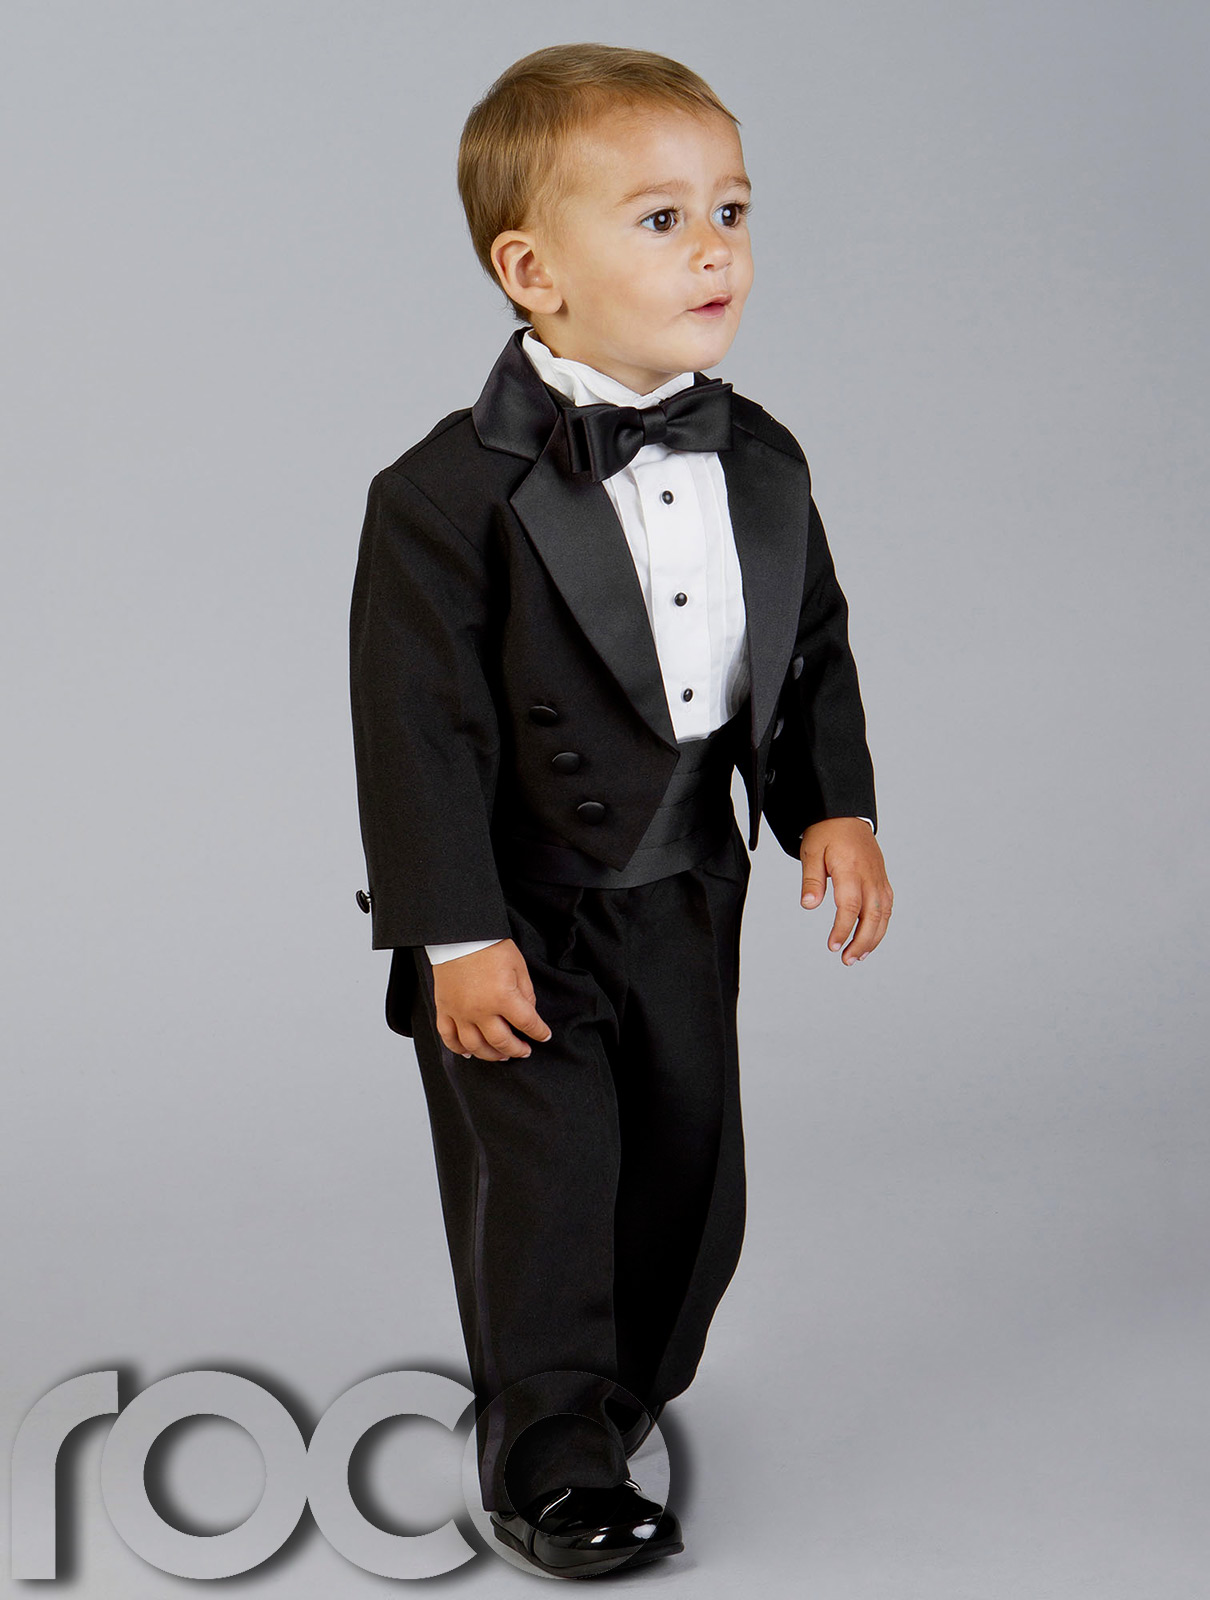 Shop for boys tuxedos, baby tuxedos and toddler tuxes. Perfect ring bearer outfits for your wedding. Formal Wear for kids of all ages at Perfect Tux.